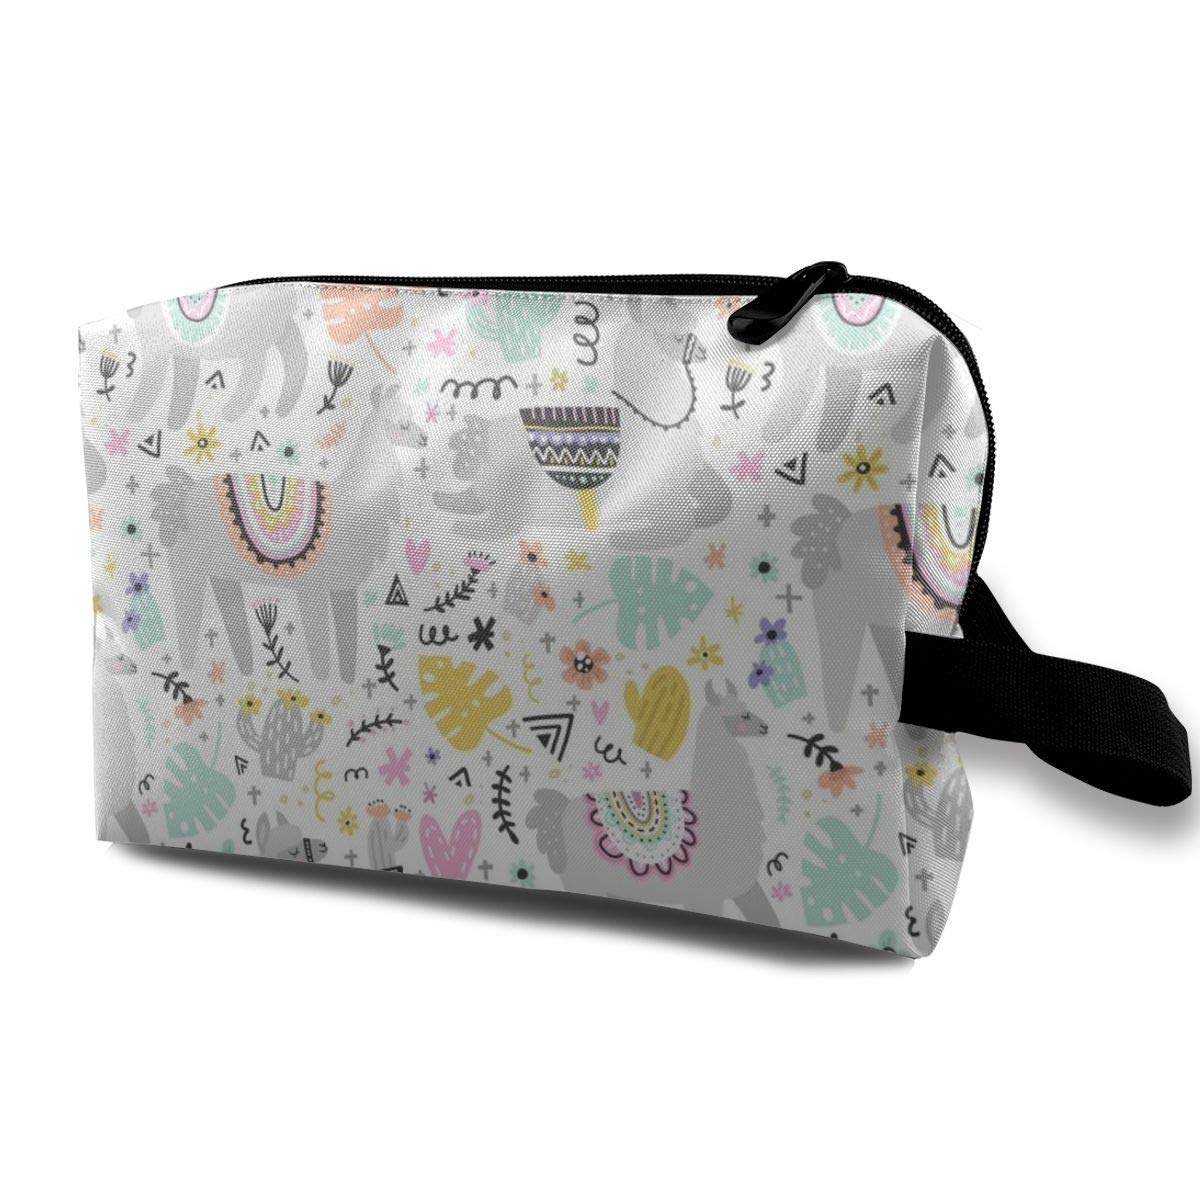 Happy Gray Llama Cactus Turtle Leaf Women Cosmetic Makeup Bag Family Toiletry Bag Accessories Organizer Children Pencil Case for Travel School Vacation